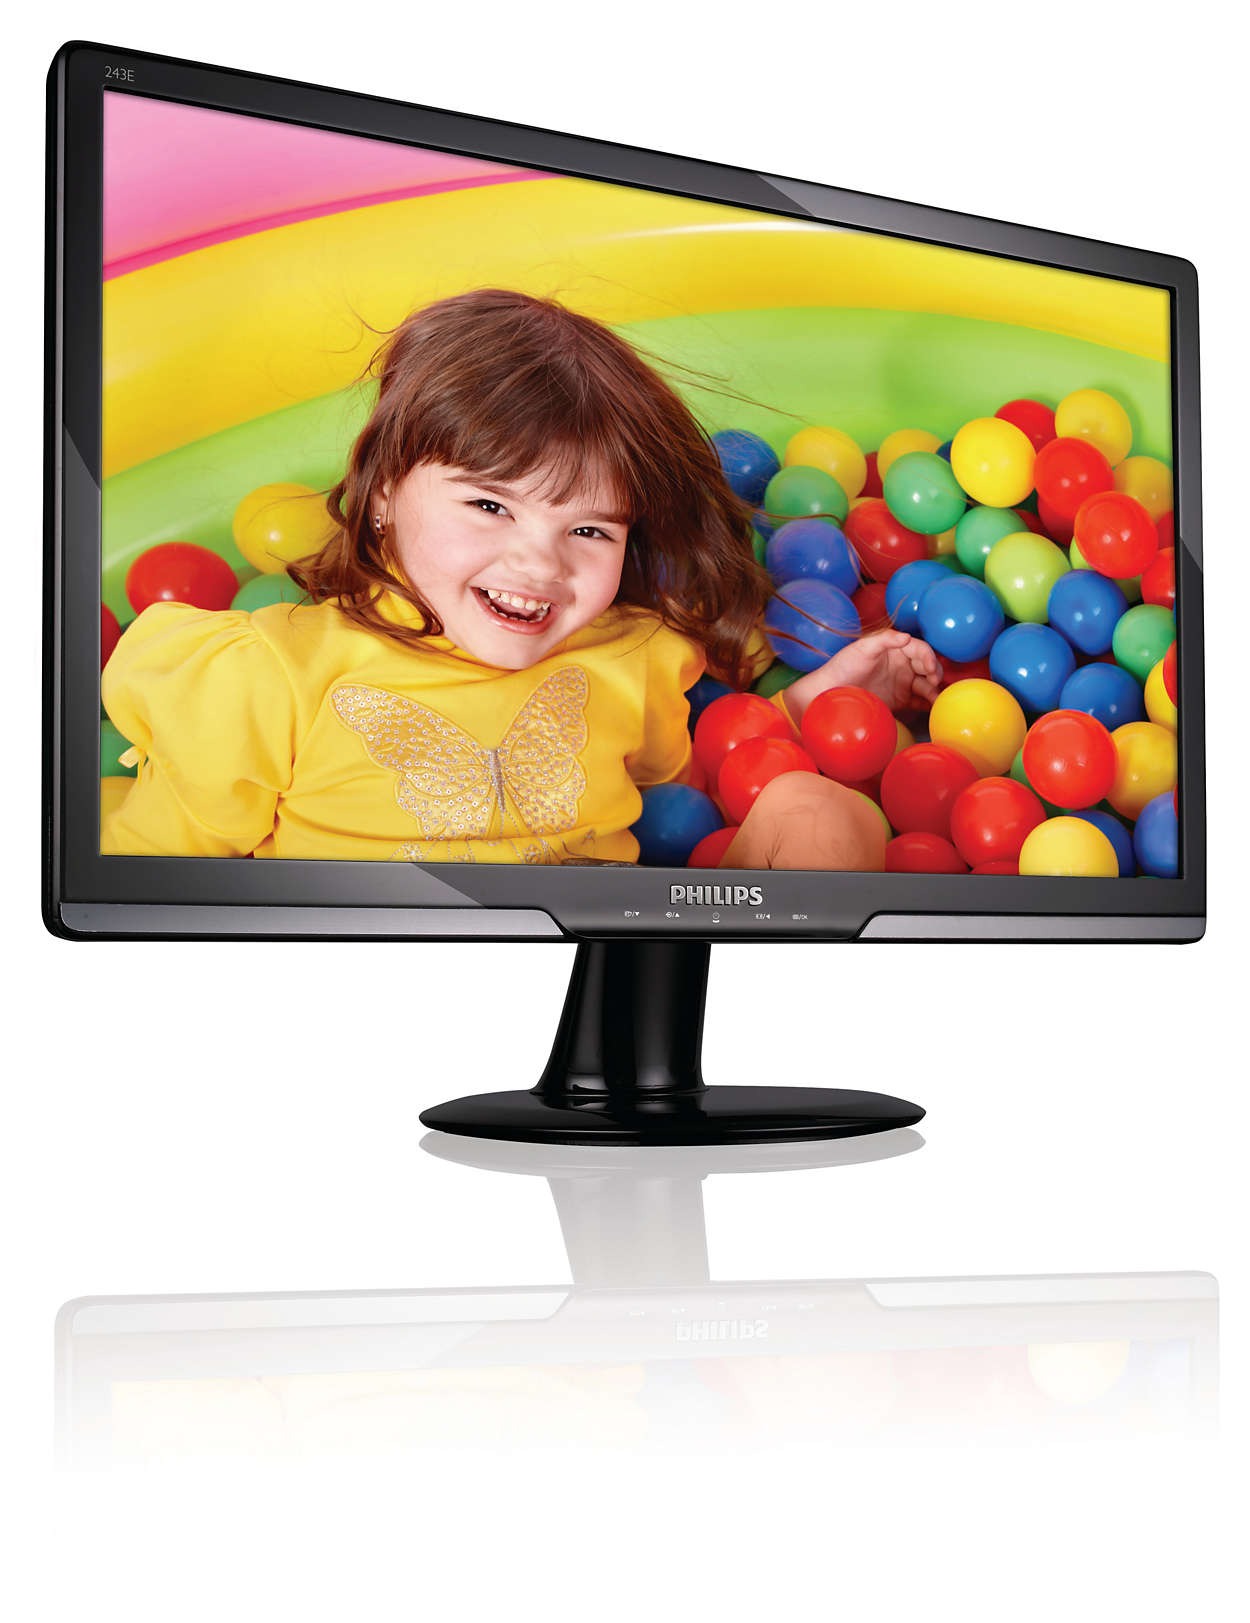 Great gaming experience on your big display !